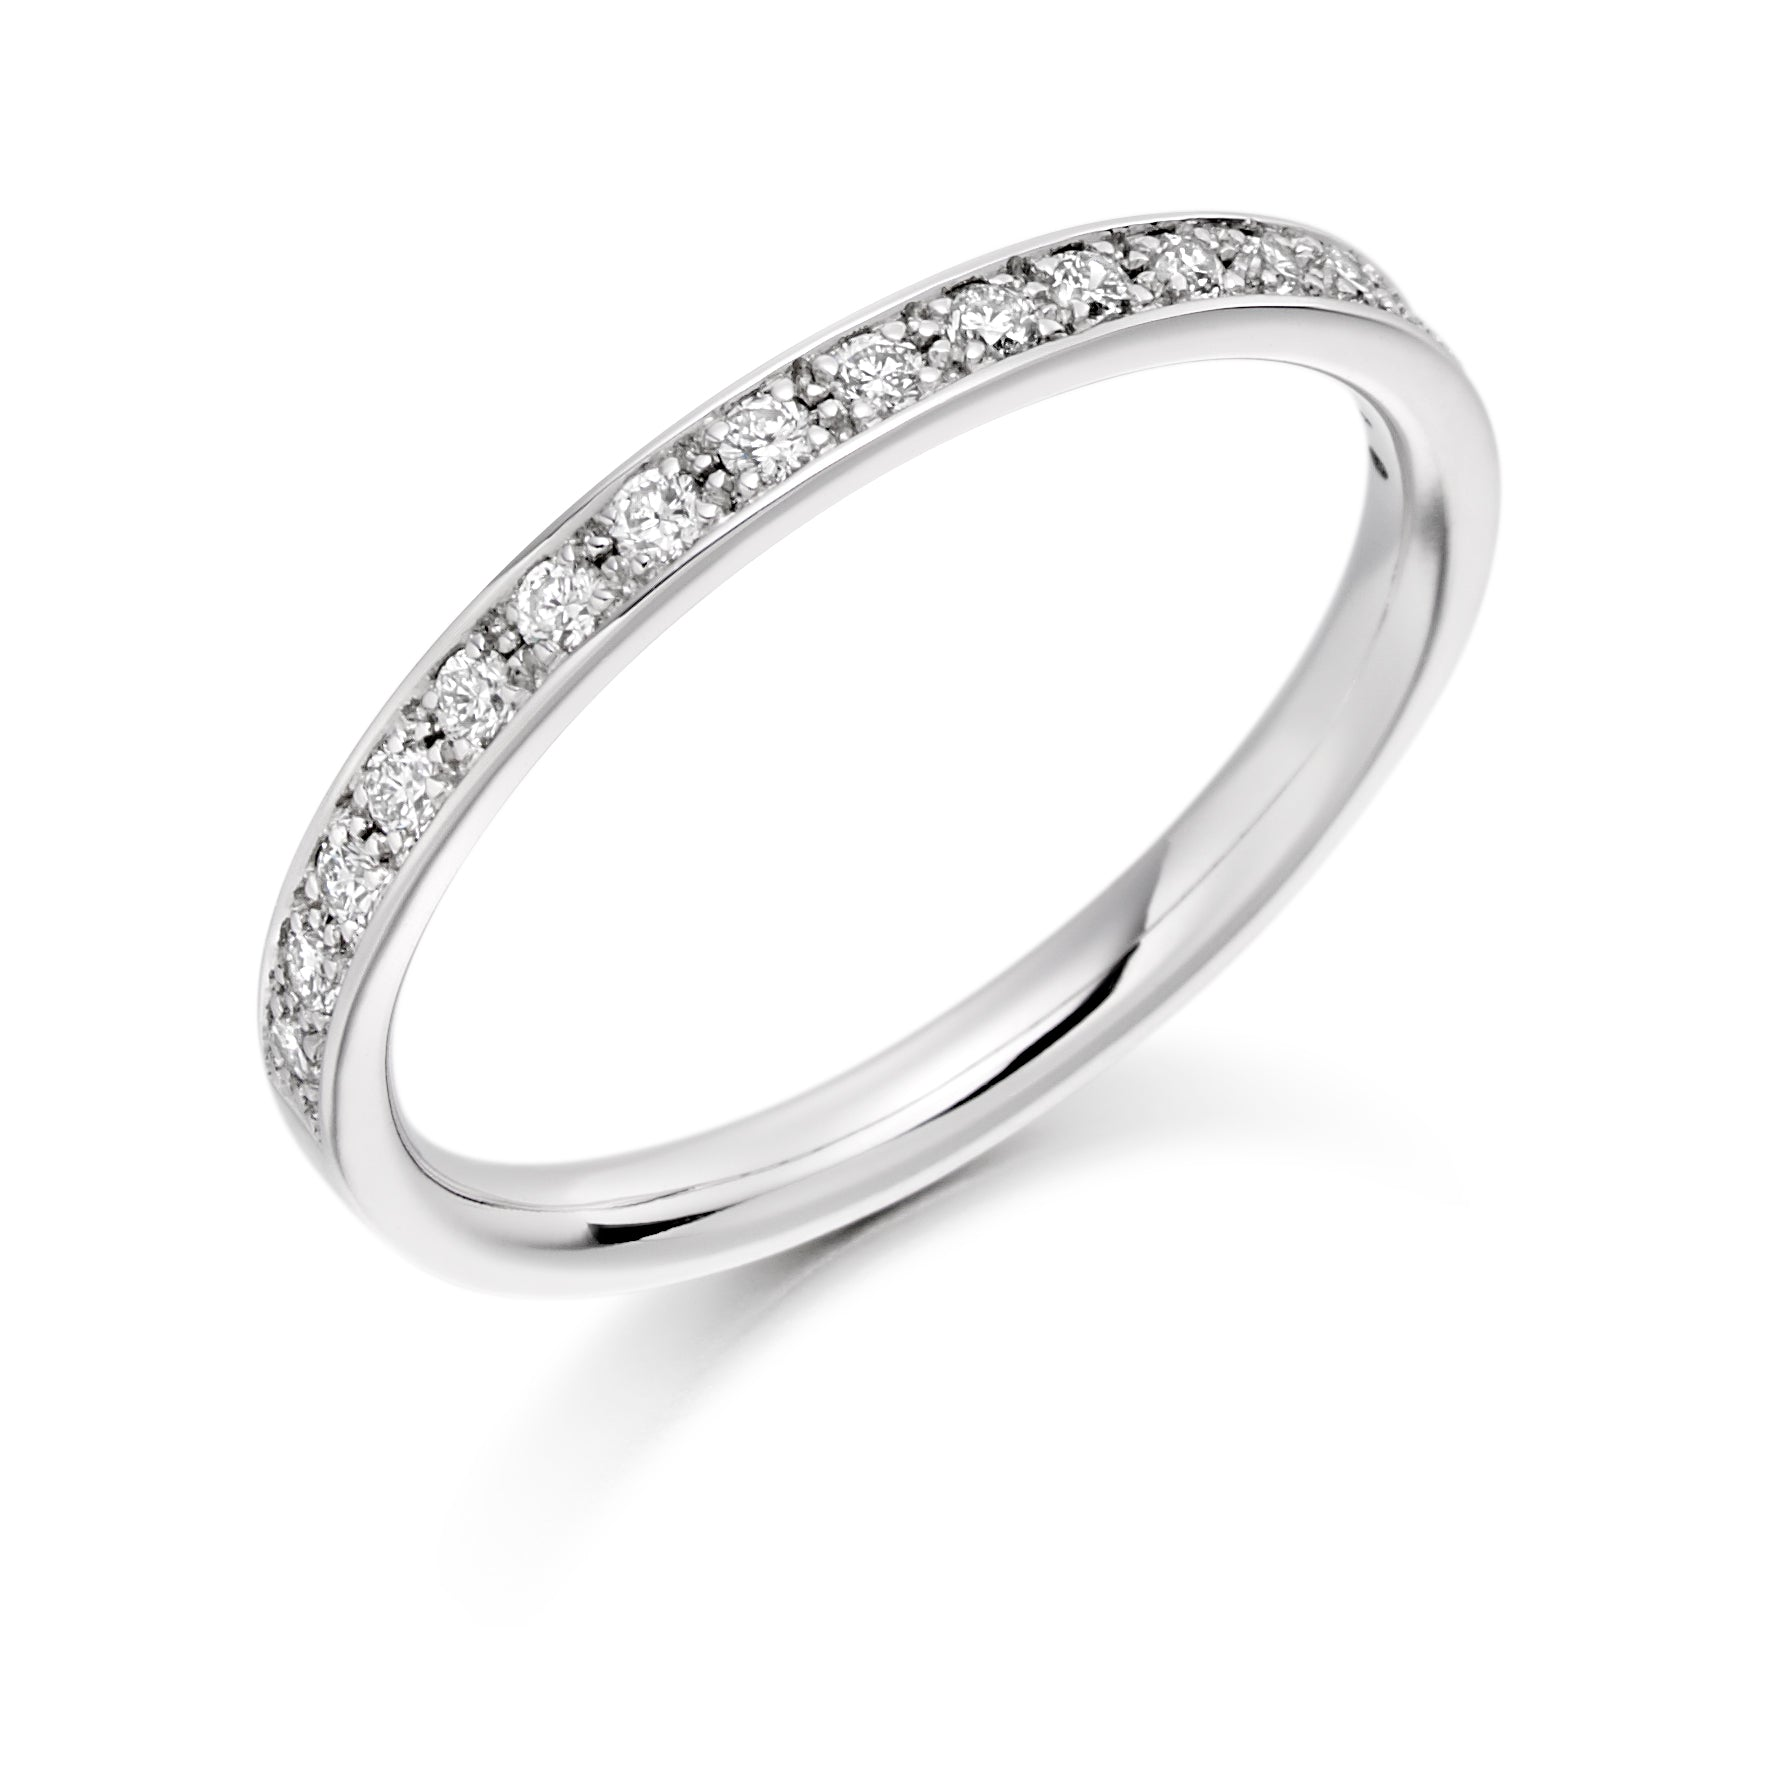 0.25 Round Brilliant Cut Diamond Grain set Wedding Ring - (Home Try-On)